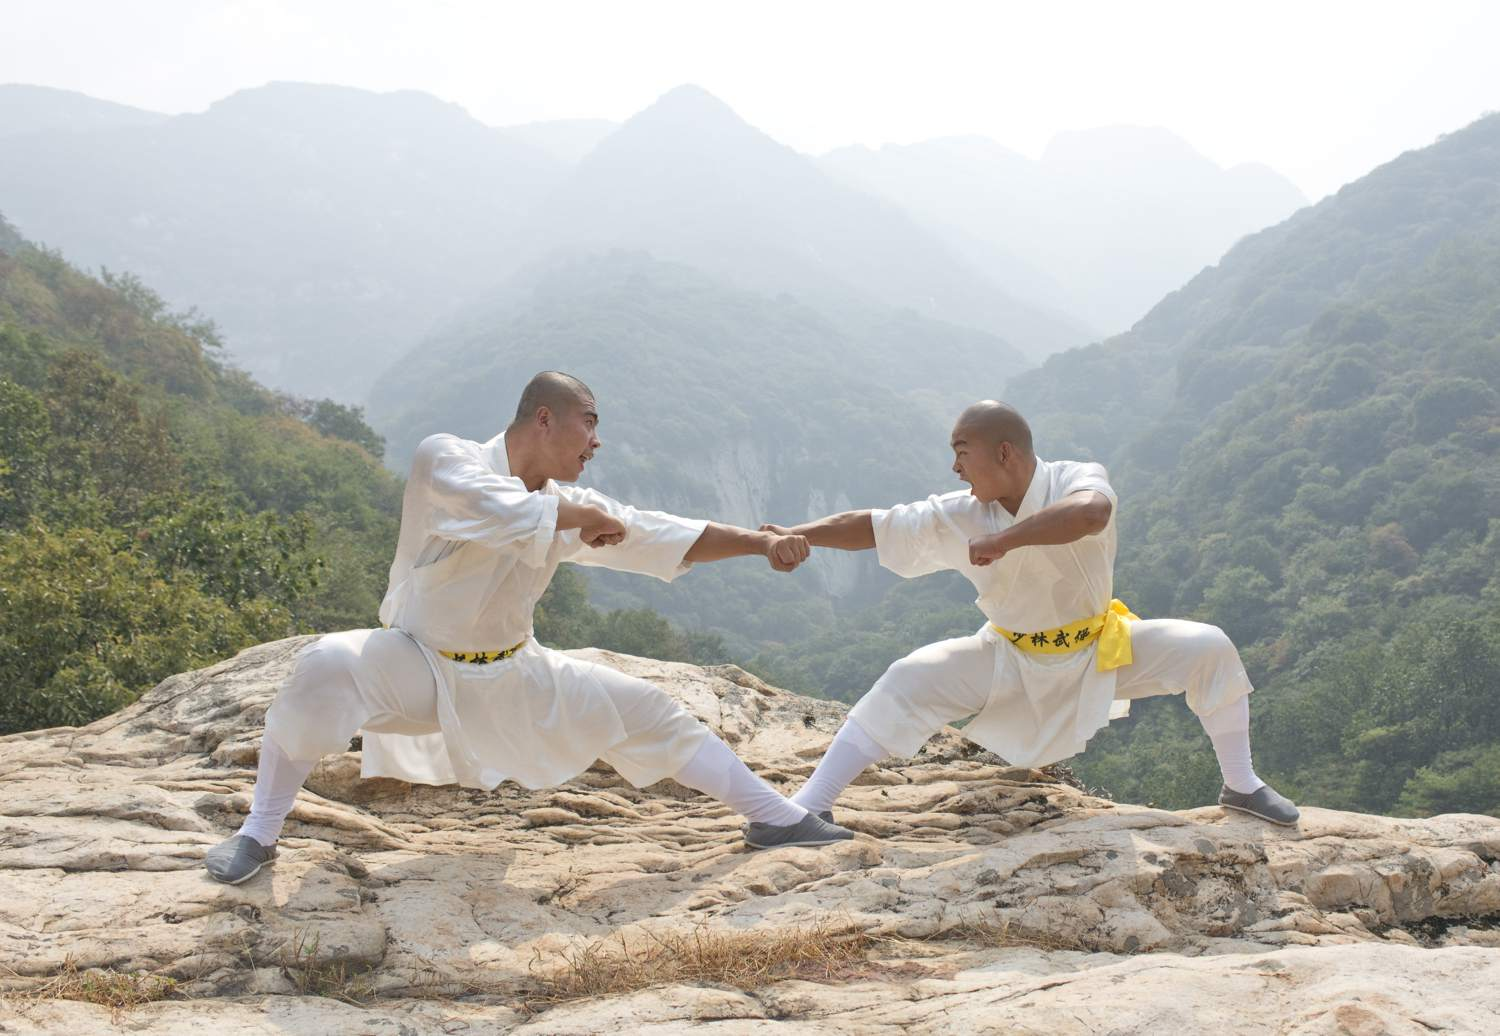 Shaolin monks practice Kung Fu on a rocky overlook near Mt. Song, China